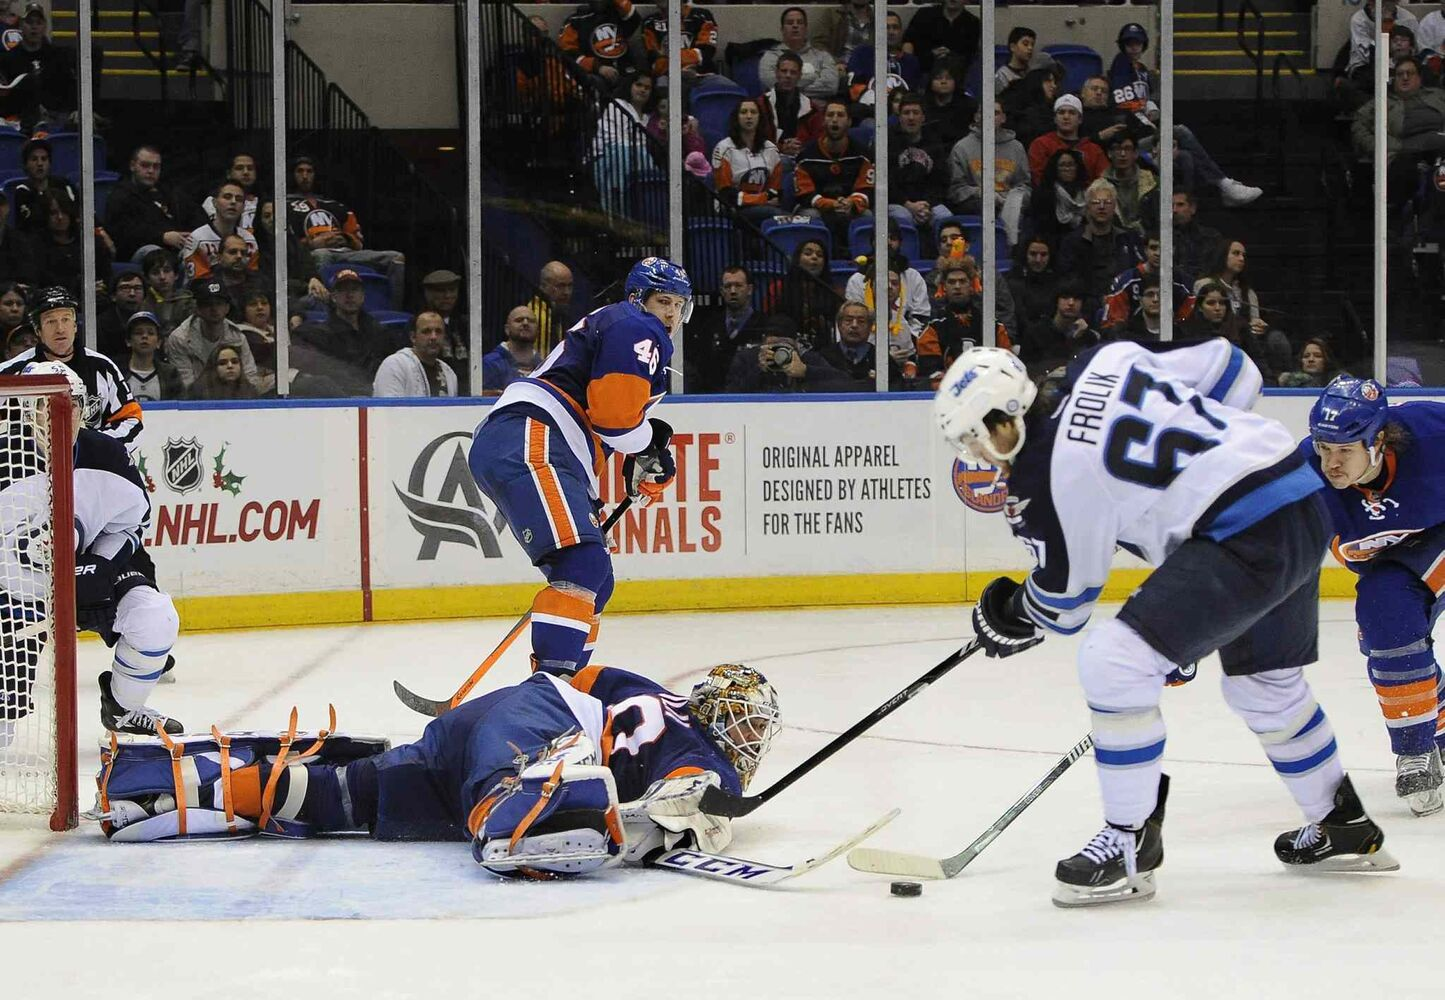 New York Islanders goalie Kevin Poulin (bottom) dives to block a shot on goal by Winnipeg Jets' Michael Frolik (67) as Matt Martin (right) defends from behind in the third period.